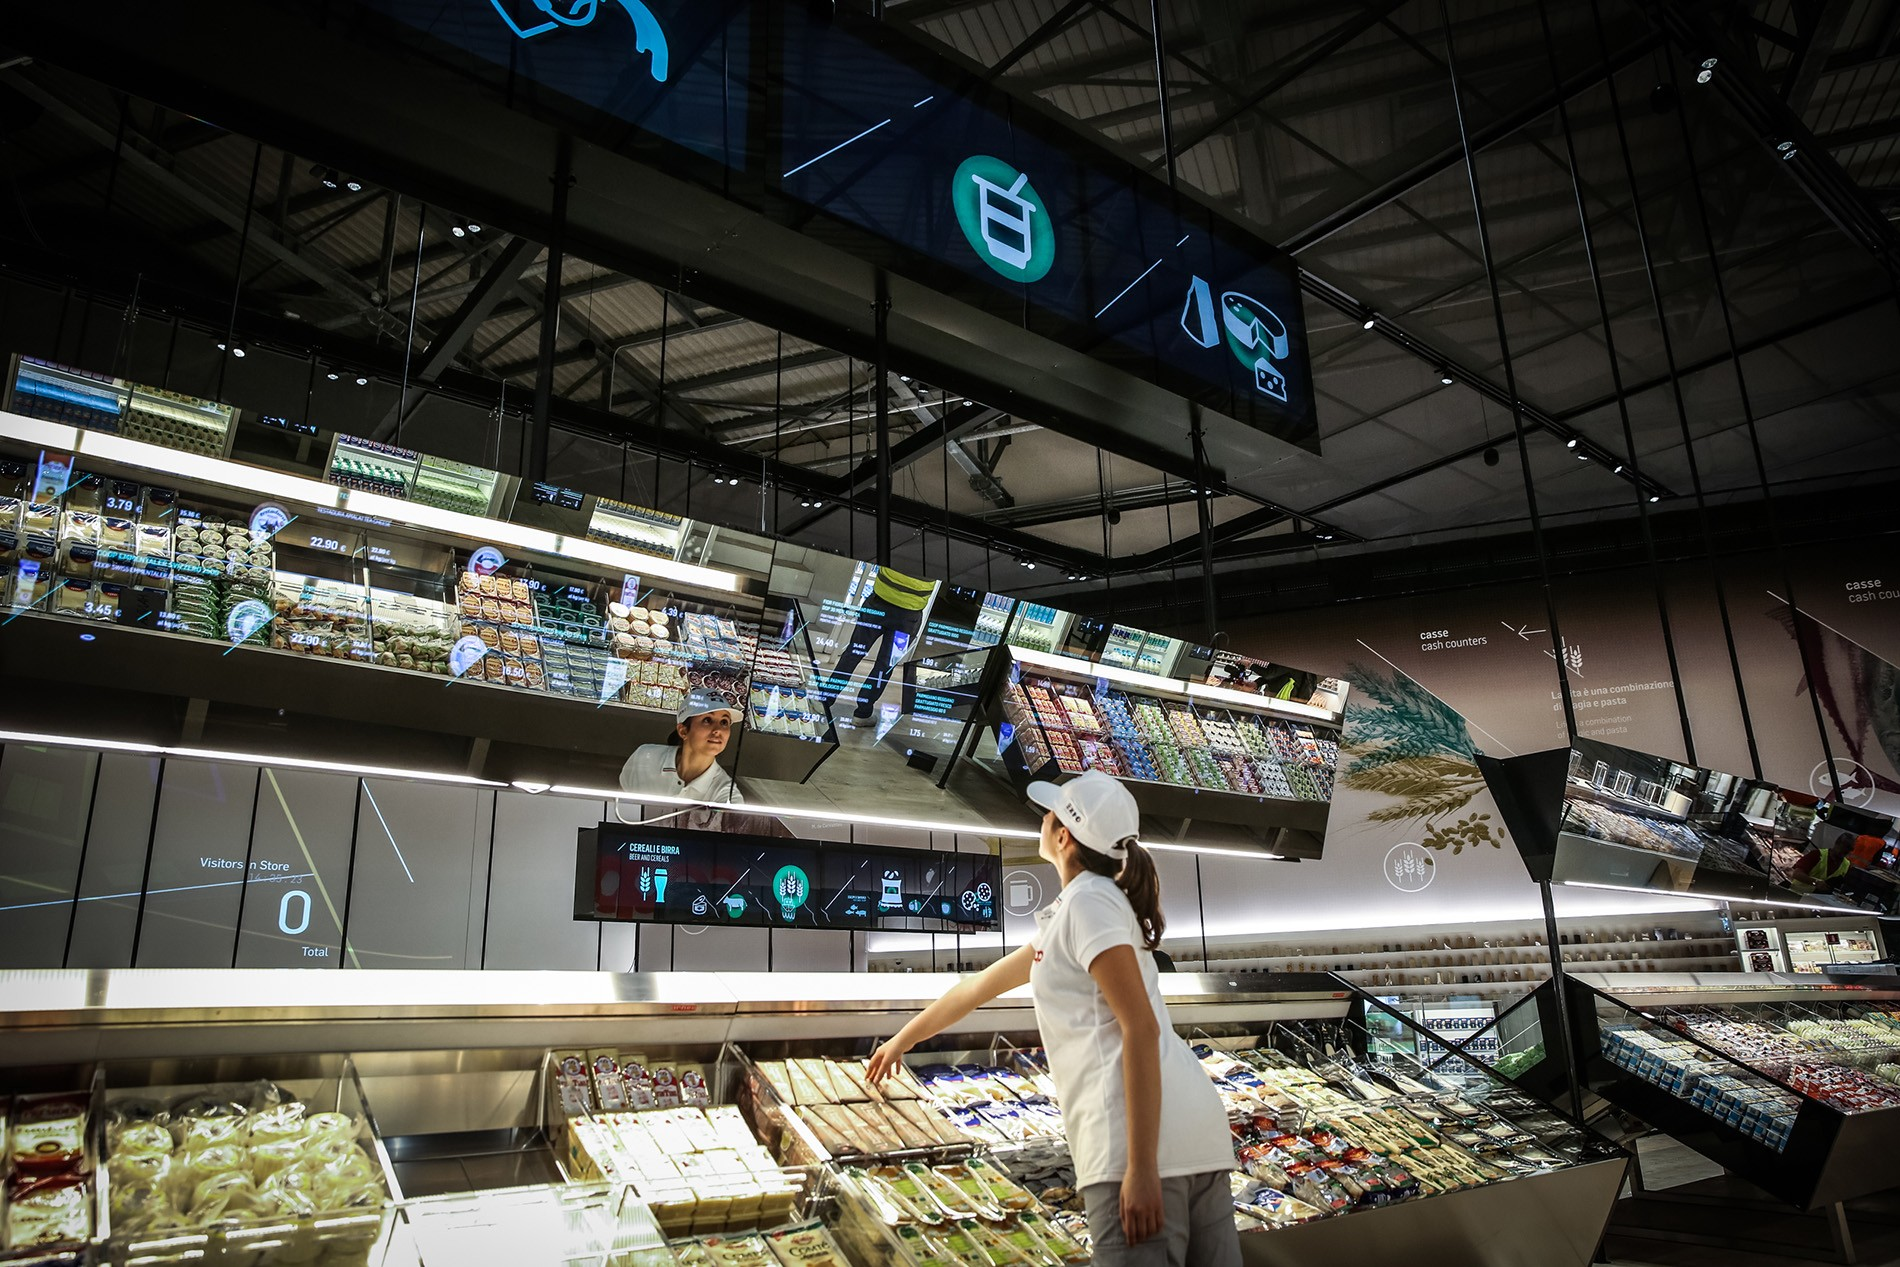 future-grocery-store-7